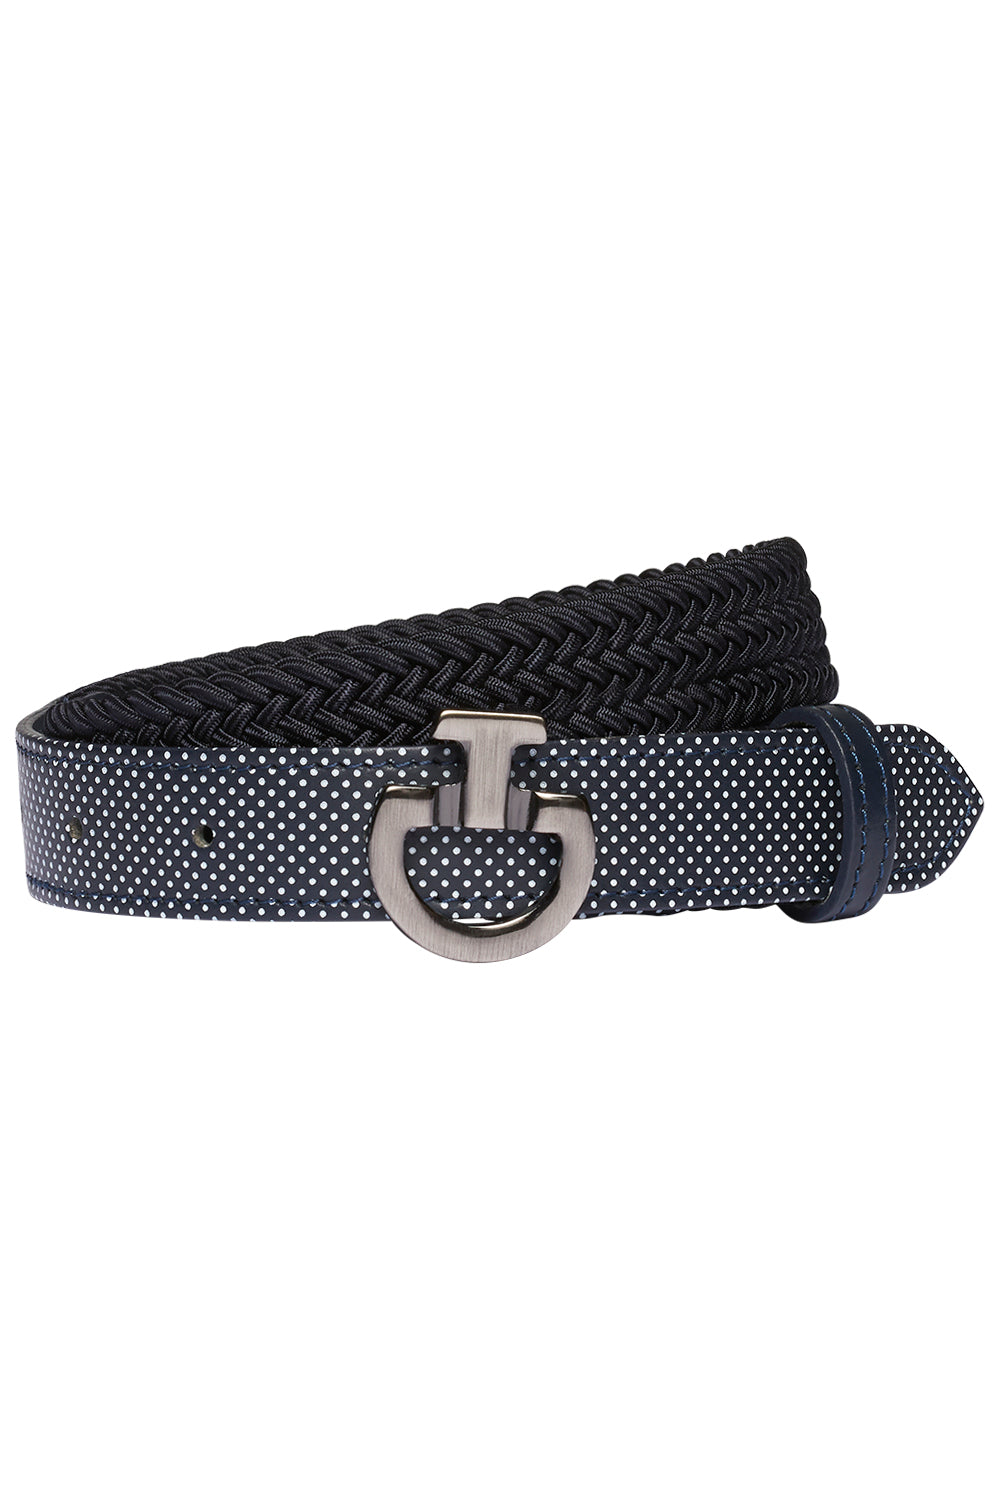 Cavalleria Toscana Young Rider Elastic Belt W/Perforated Leather